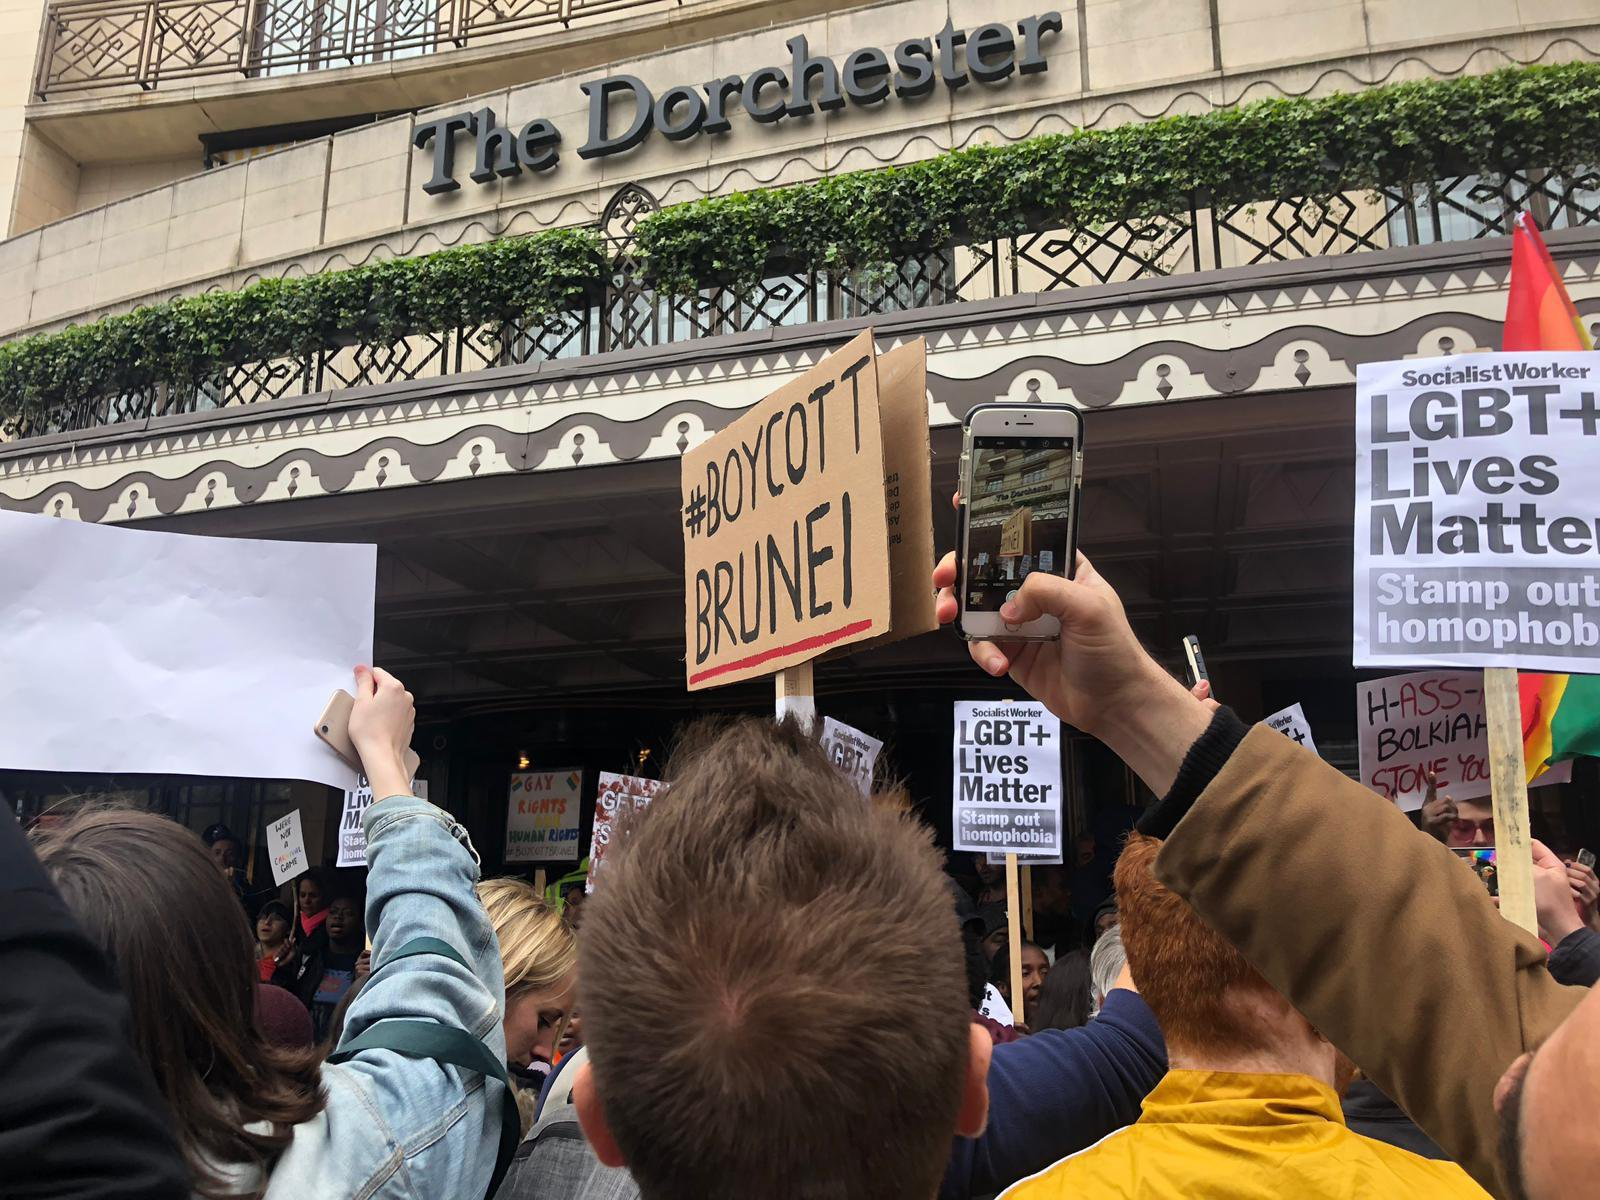 Dorchester Protest - Protesters gather outside the Dorchester Hotel against Brunei's anti-LGBT laws